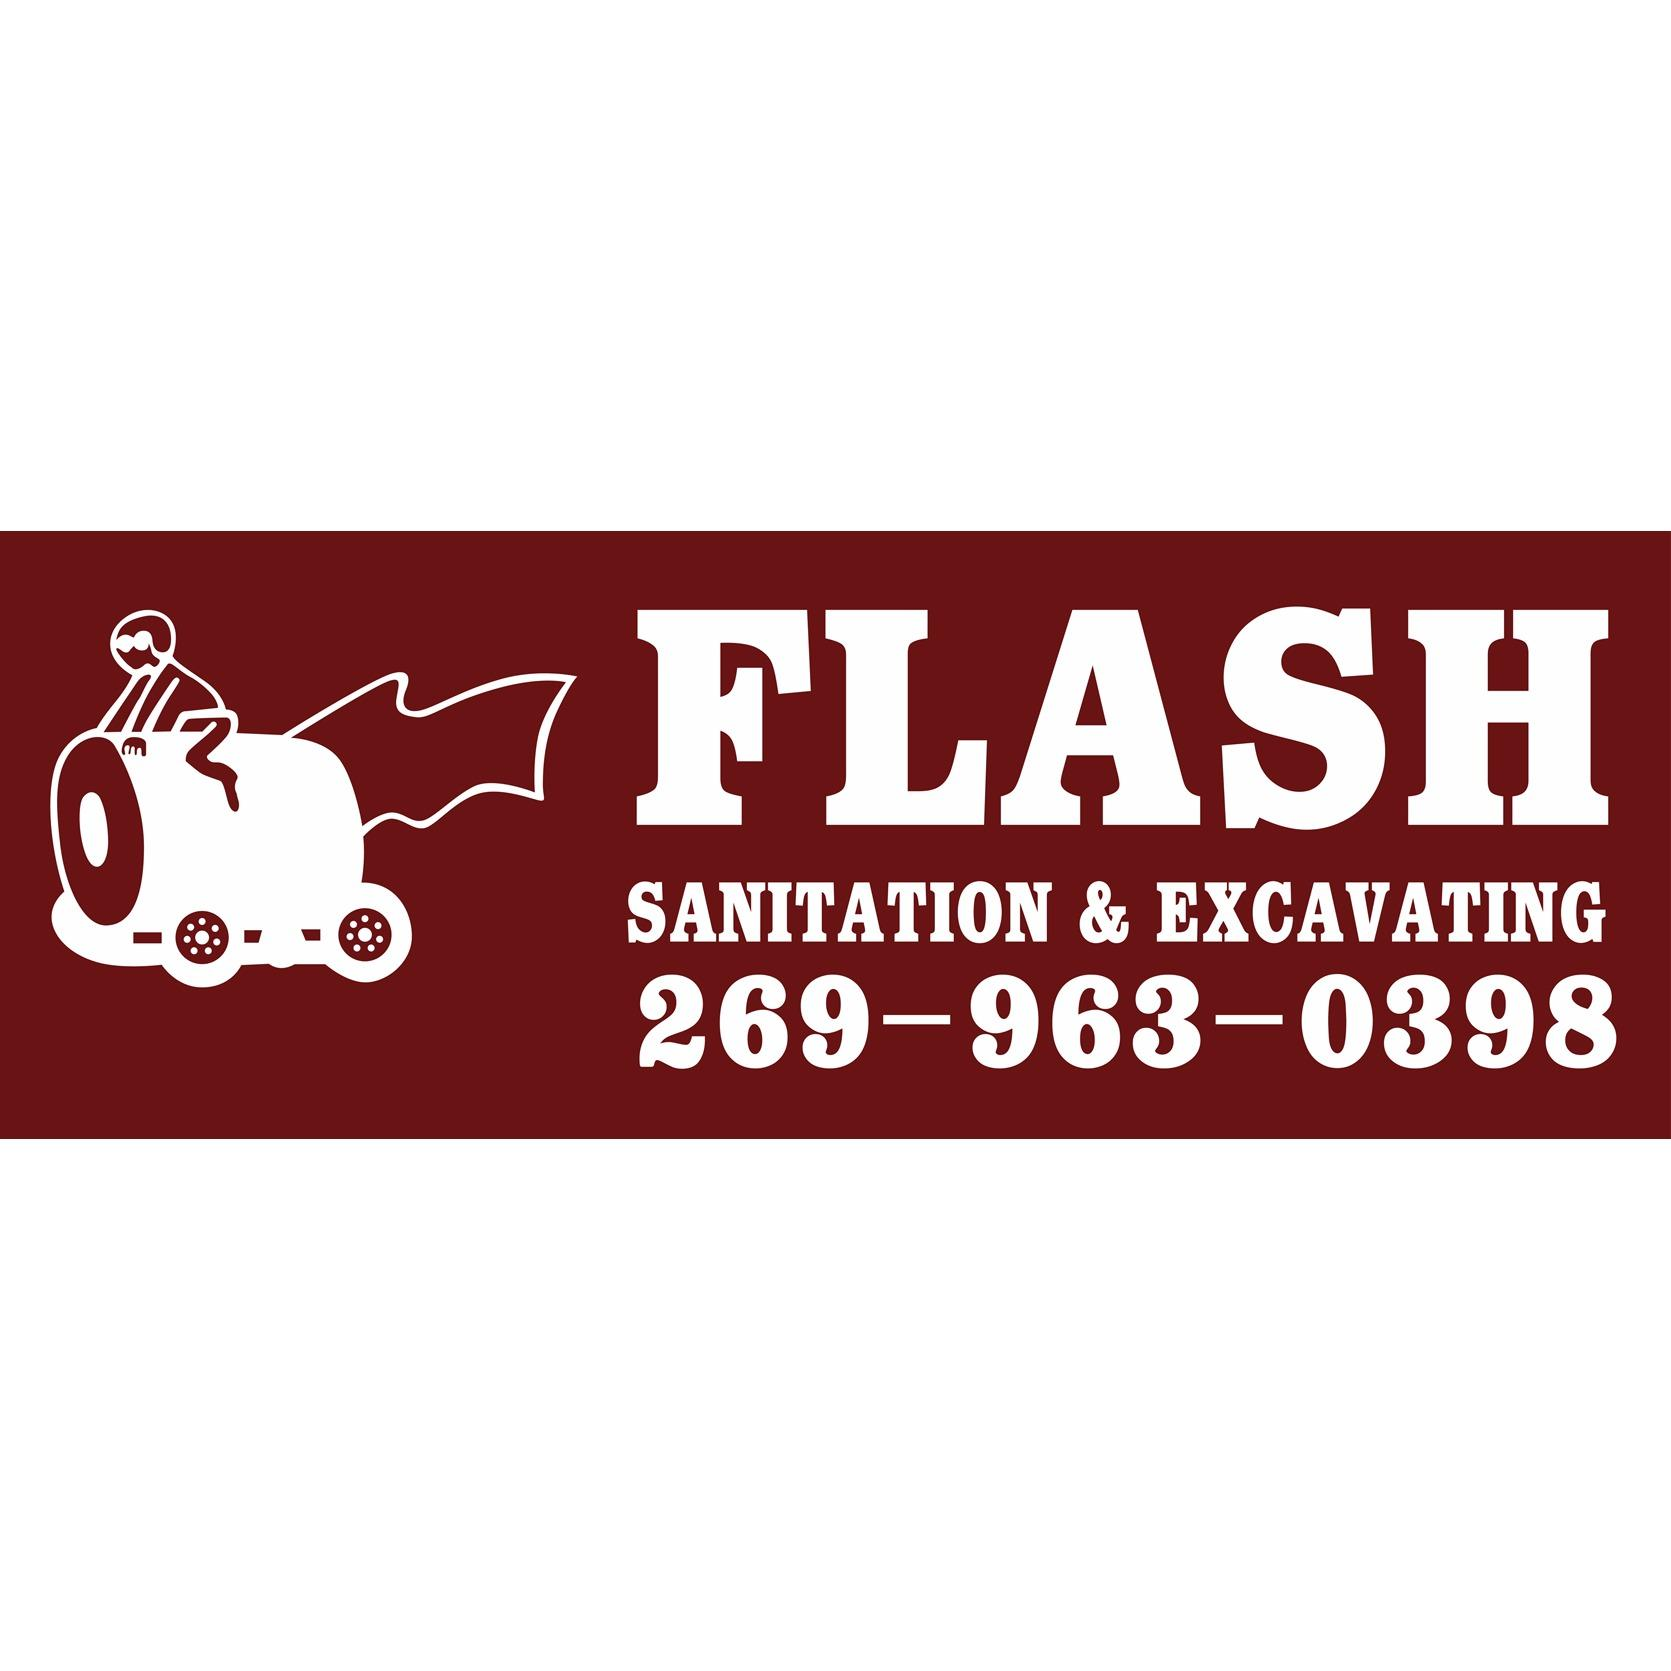 Flash Sanitation & Excavating